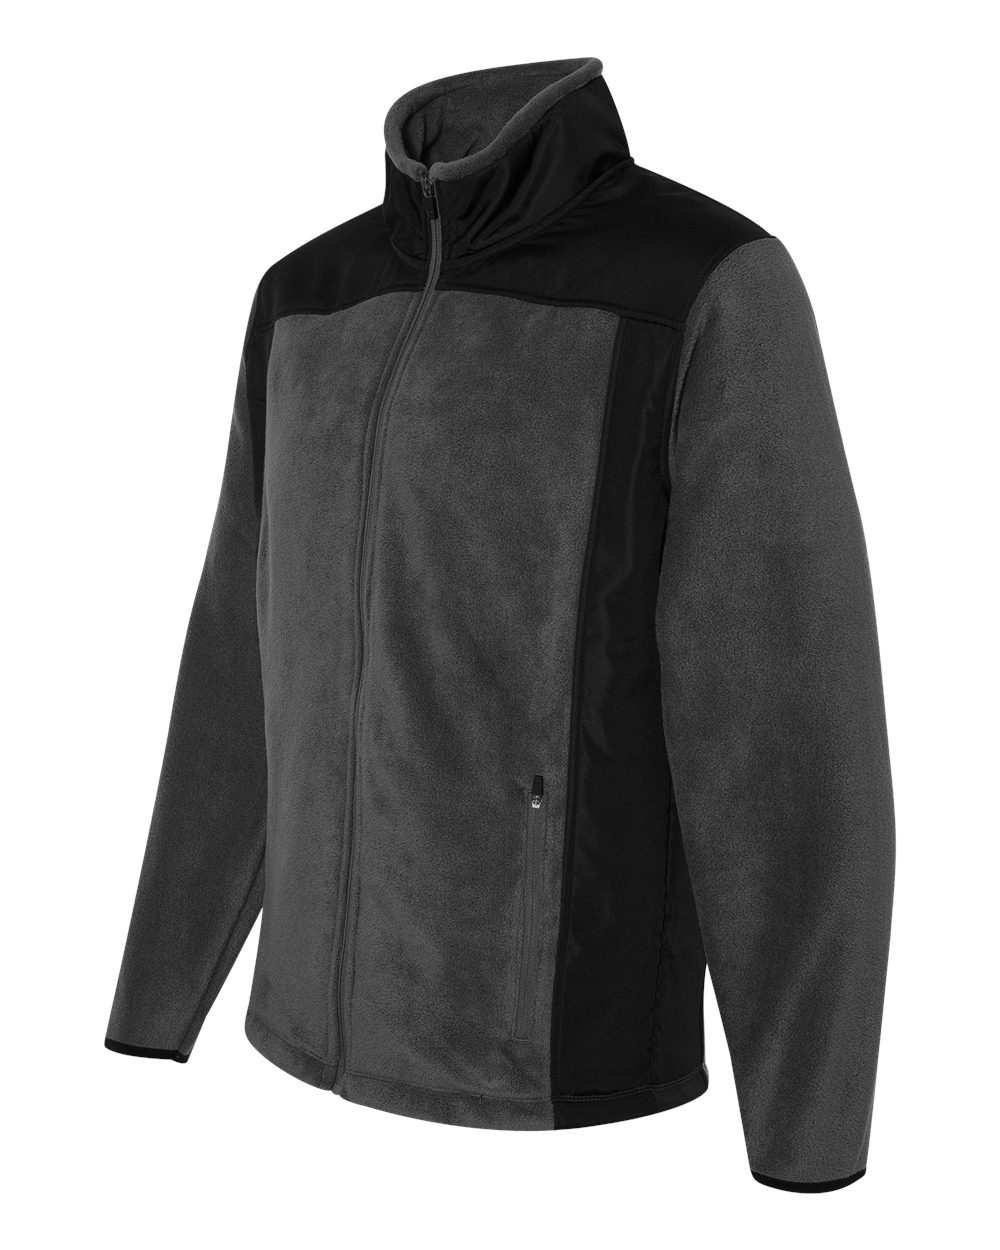 Colorado Clothing 7115 - Telluride Nylon/Polarfleece Jacket